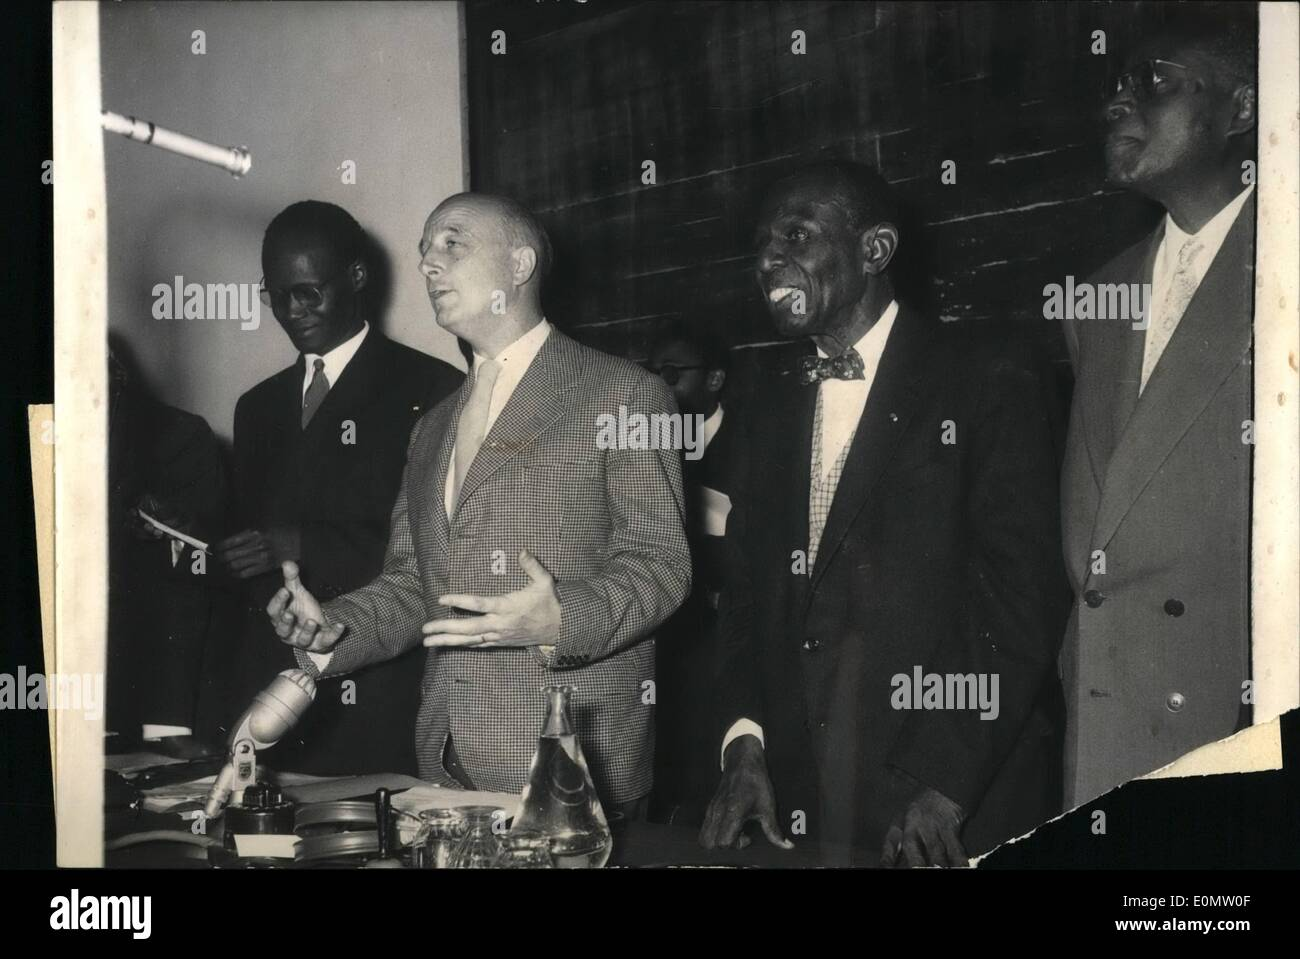 Sep. 09, 1956 - Black Writers and Artist's Congress opens in Paris: The first congress of Black Writers and Artists from overseas opened at Sorbonne University in Paris this morning. Photo shows M.Huebrt Sechamps (center), Governor of Madagascar , making the opening speech, on left N. Alioune Diop; on right, M. Price Mars, Chairman of the Congress. - Stock Image